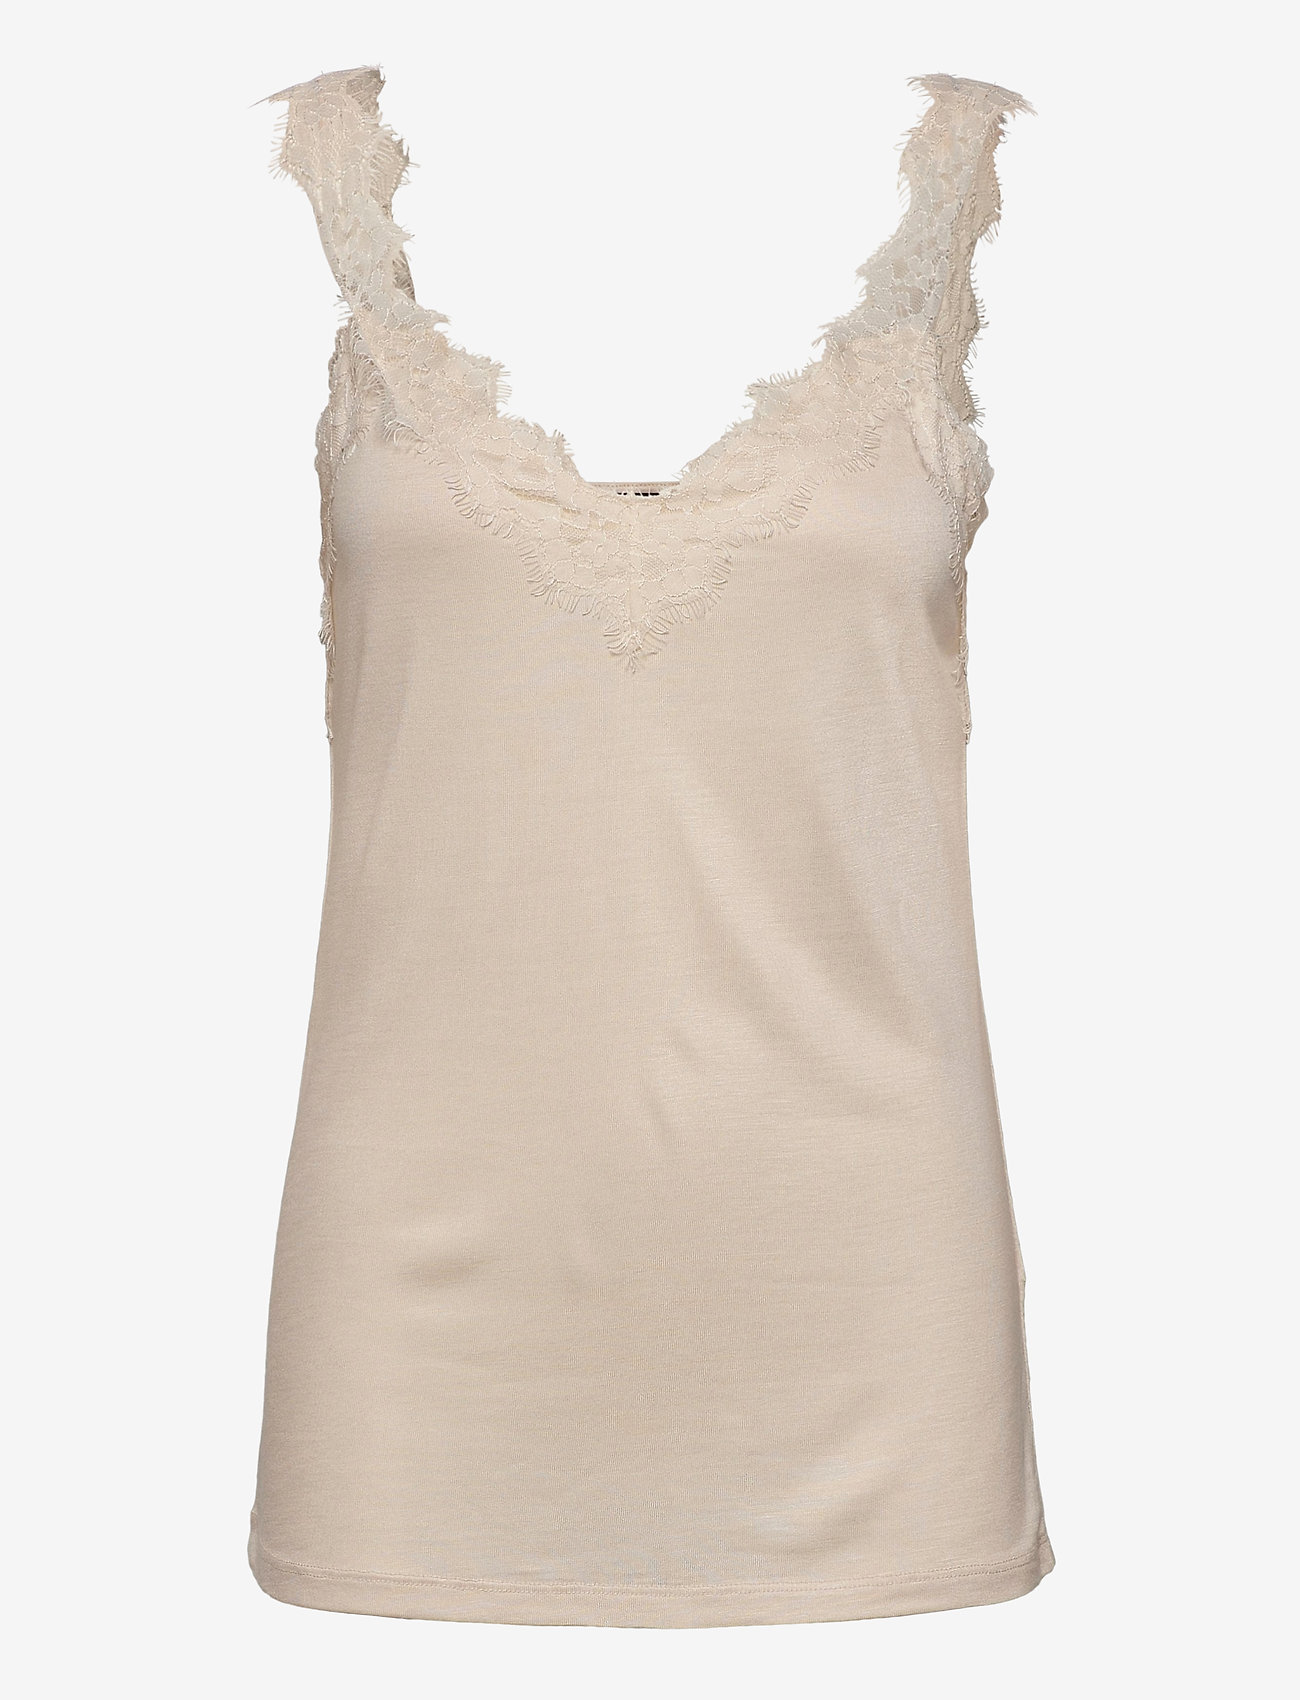 Esprit Collection - T-Shirts - sleeveless tops - sand - 0